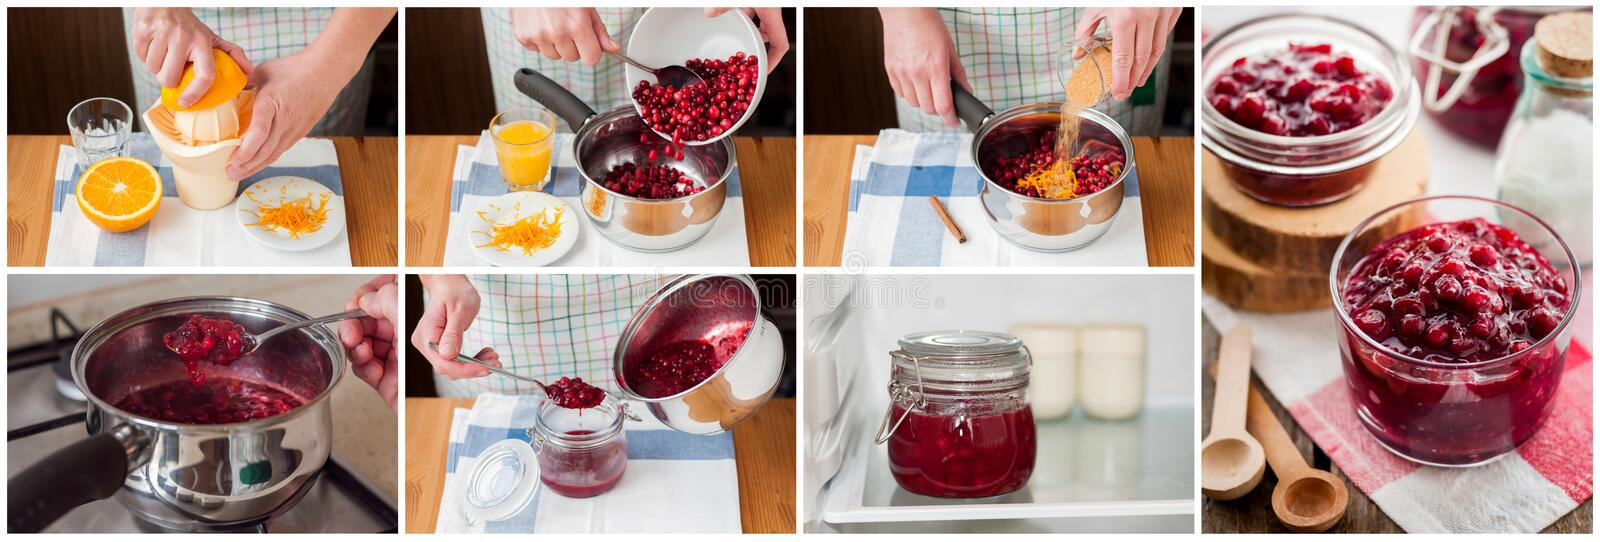 A Step by Step Collage of Making Cranberry Sauce royalty free stock images